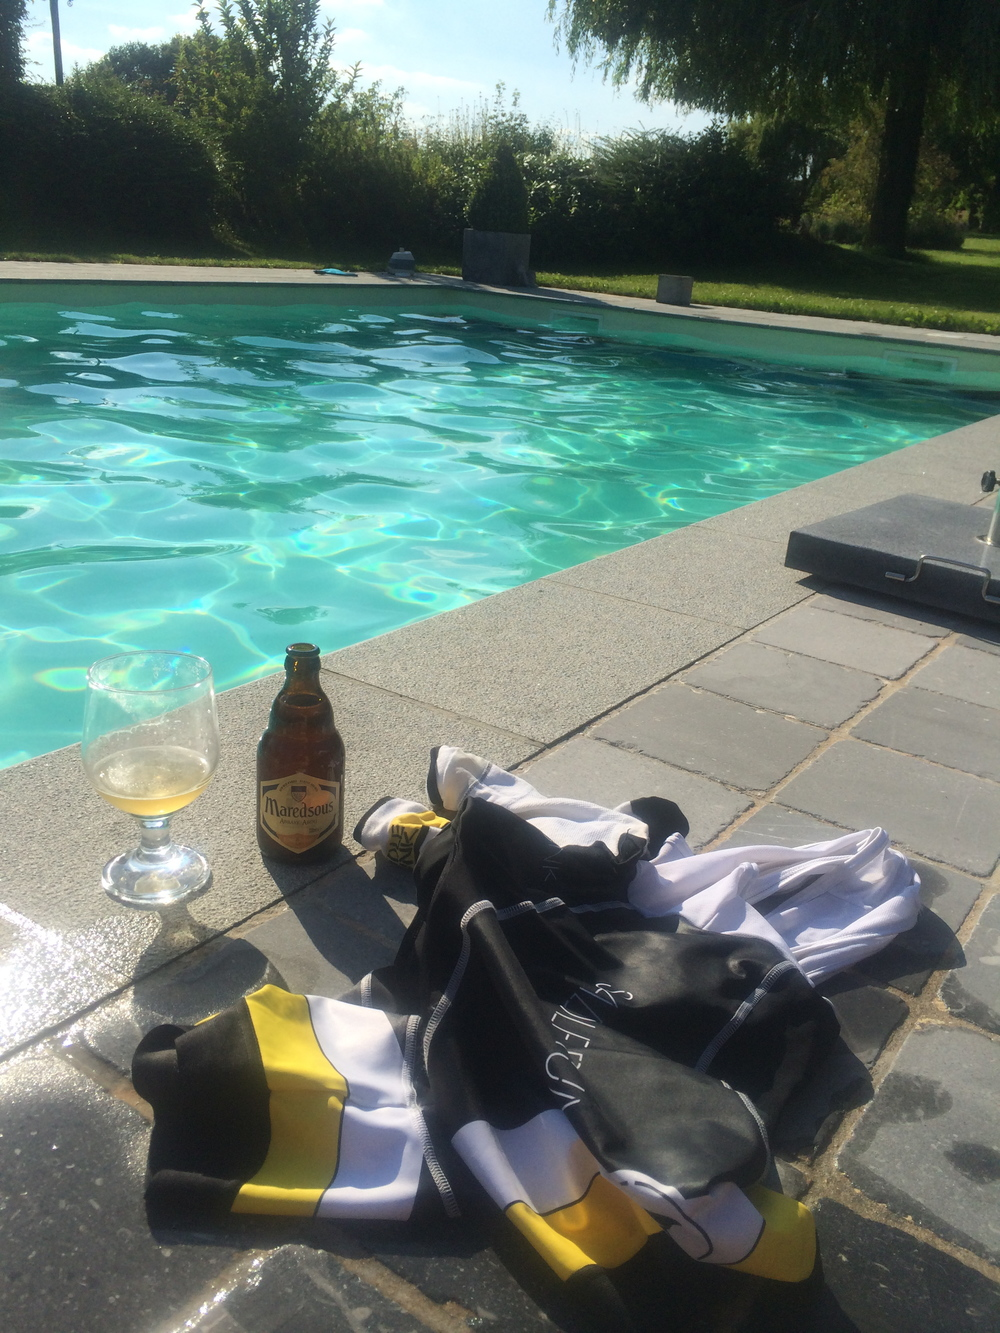 Having a belgian beer after the race by the pool